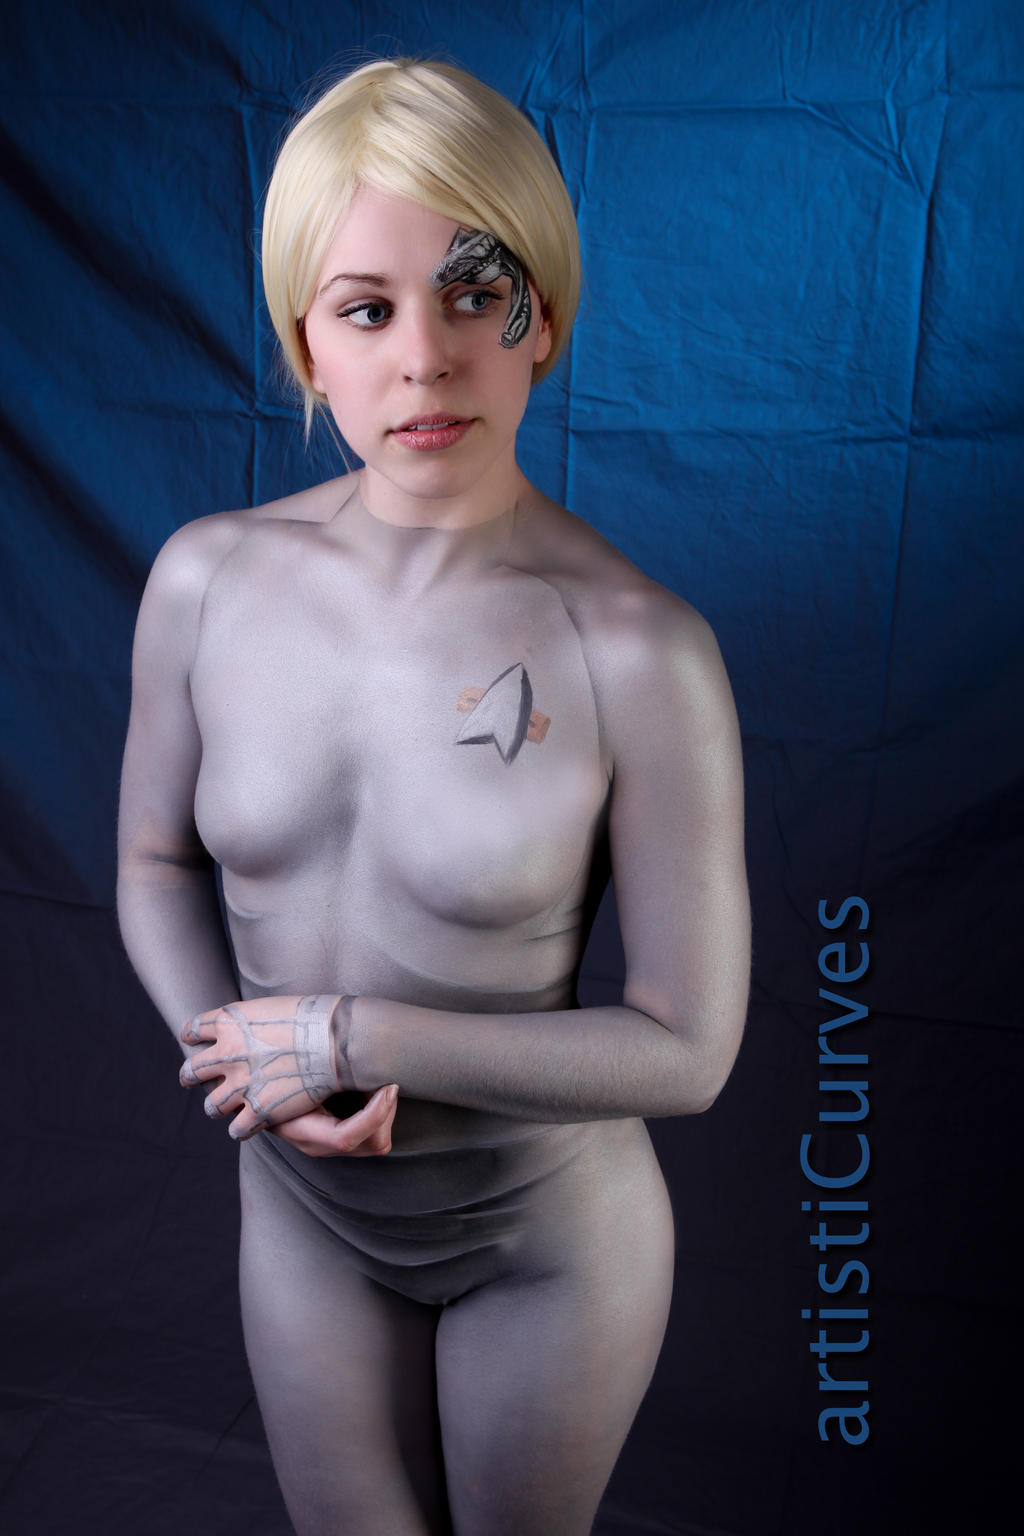 Seven of Nine body paint 13 by shelle-chii